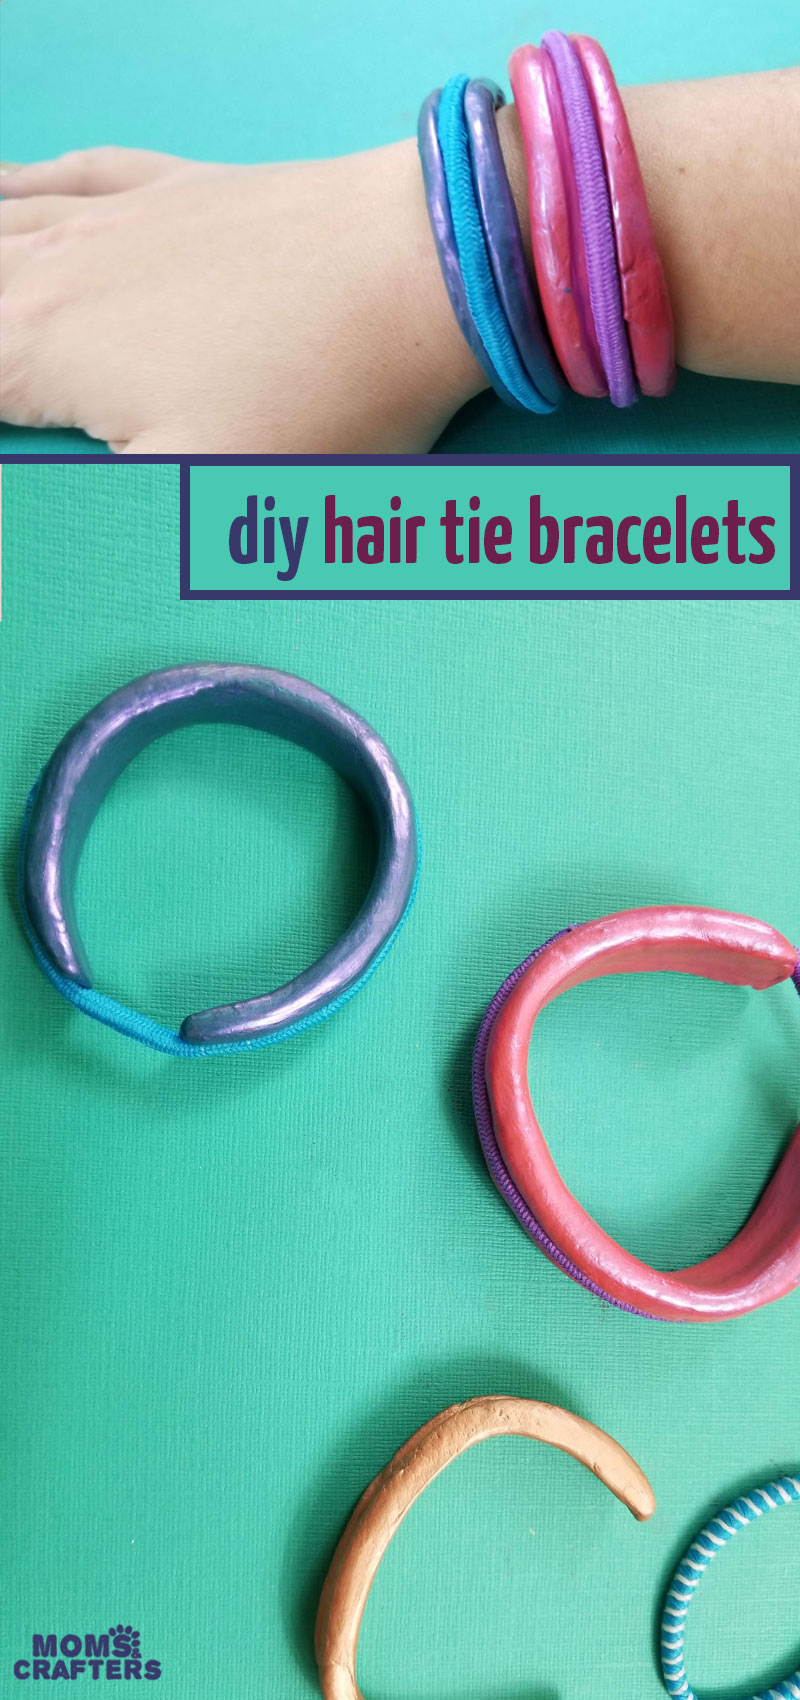 Click to learn how to make these hair tie bracelets DIY - this fun and easy clay jewelry making craft for teens and tweens (and grown-ups) is perfect for beginners! You'll love this easy craft tutorial for hair tie bracelets to serve as a bangle holder for your ponytail holders. #polymerclay #jewelrymaking #teencrafts